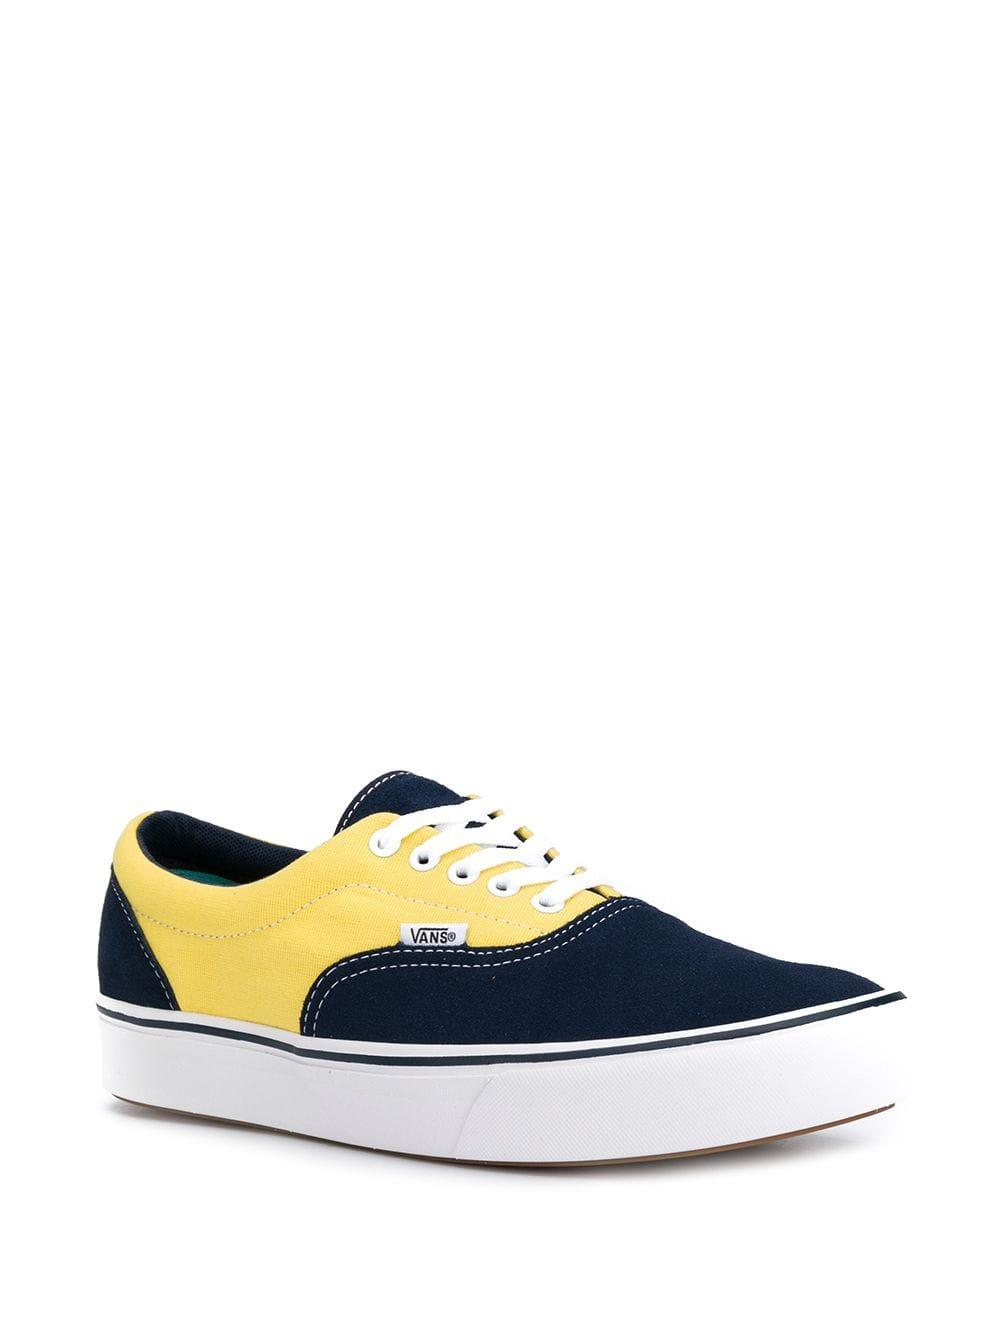 a603ae5dd4 Lyst - Vans Confycush Era Sneakers in Blue for Men